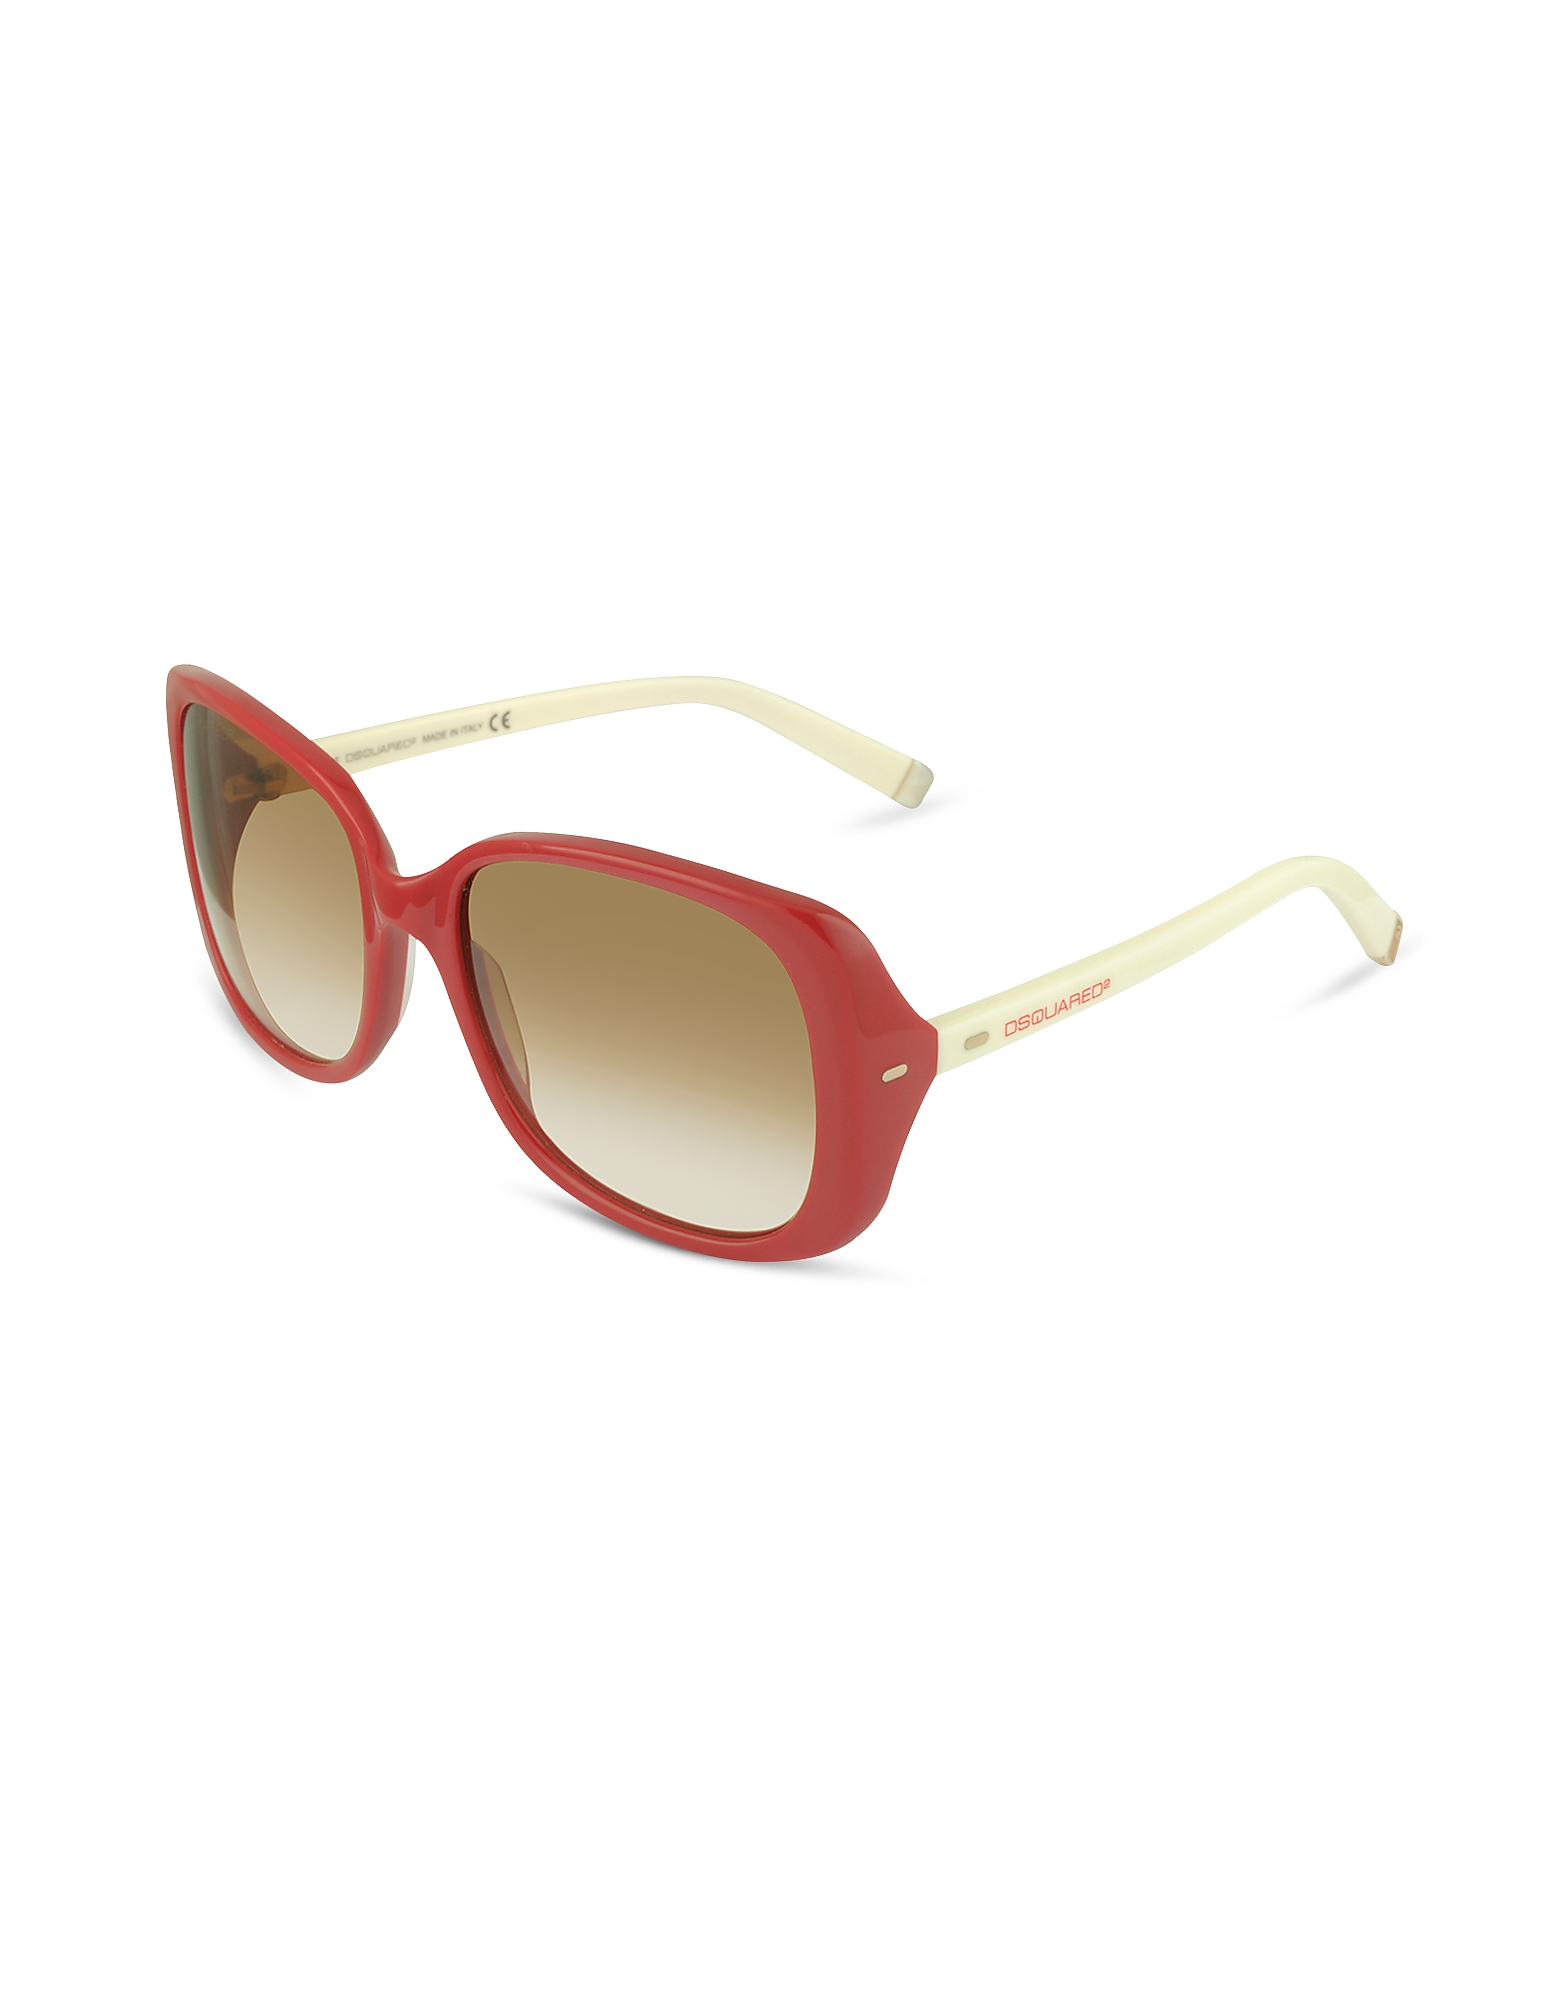 DSquared2 Sunglasses, Signature Acetate Square Frame Sunglasses